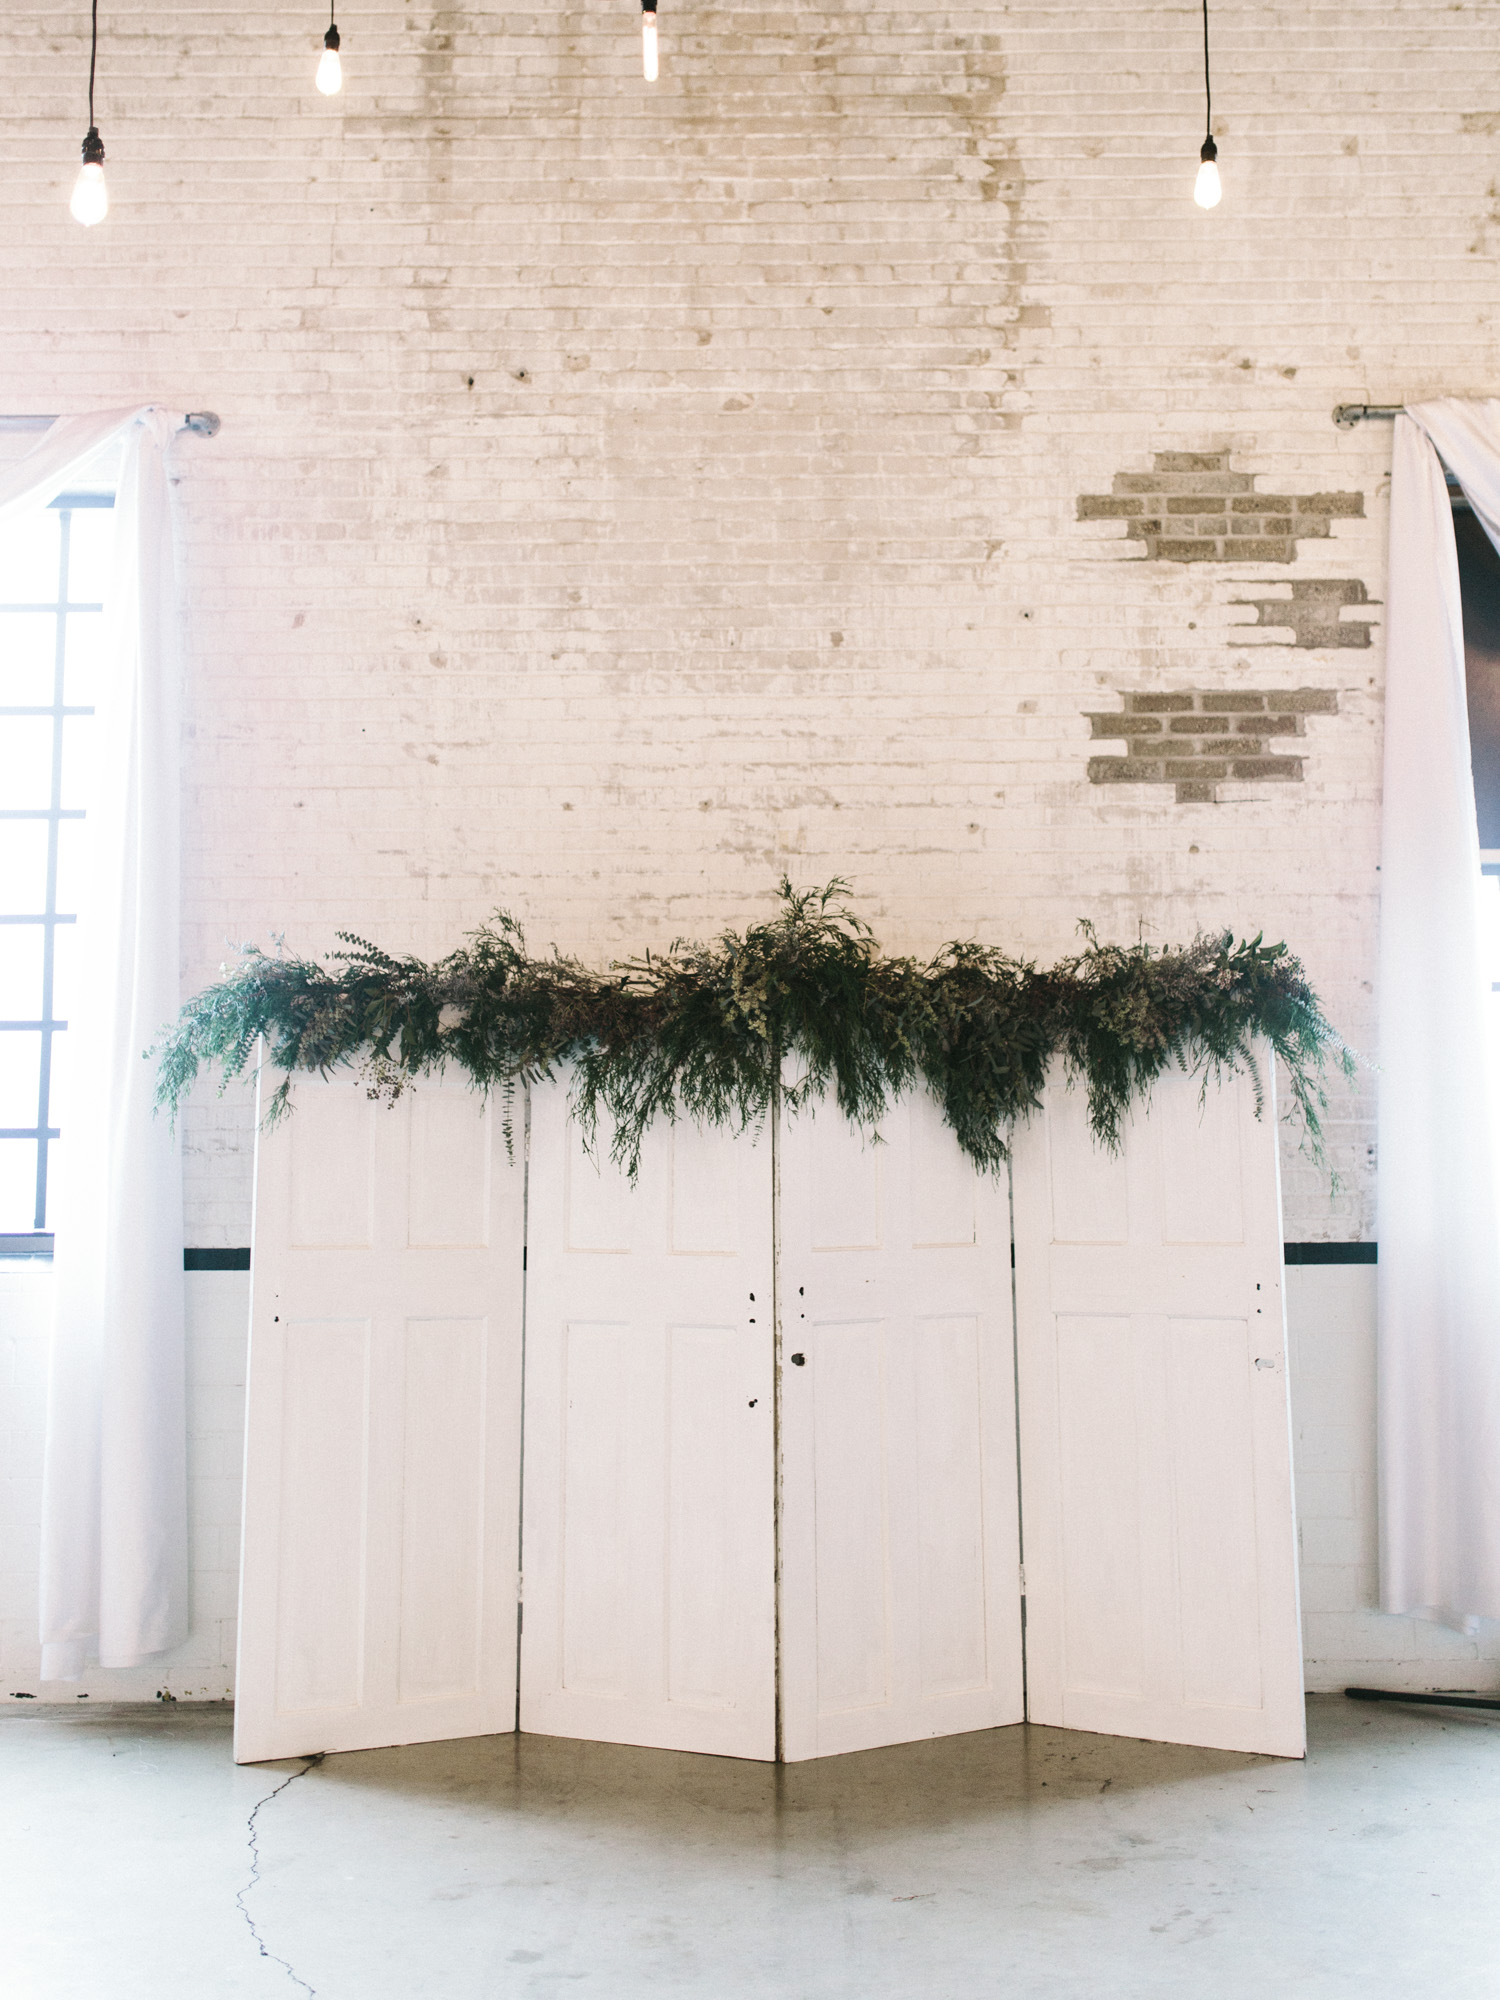 White doors topped with lush greenery serve as a unique wedding ceremony backdrop at The Brick in South Bend